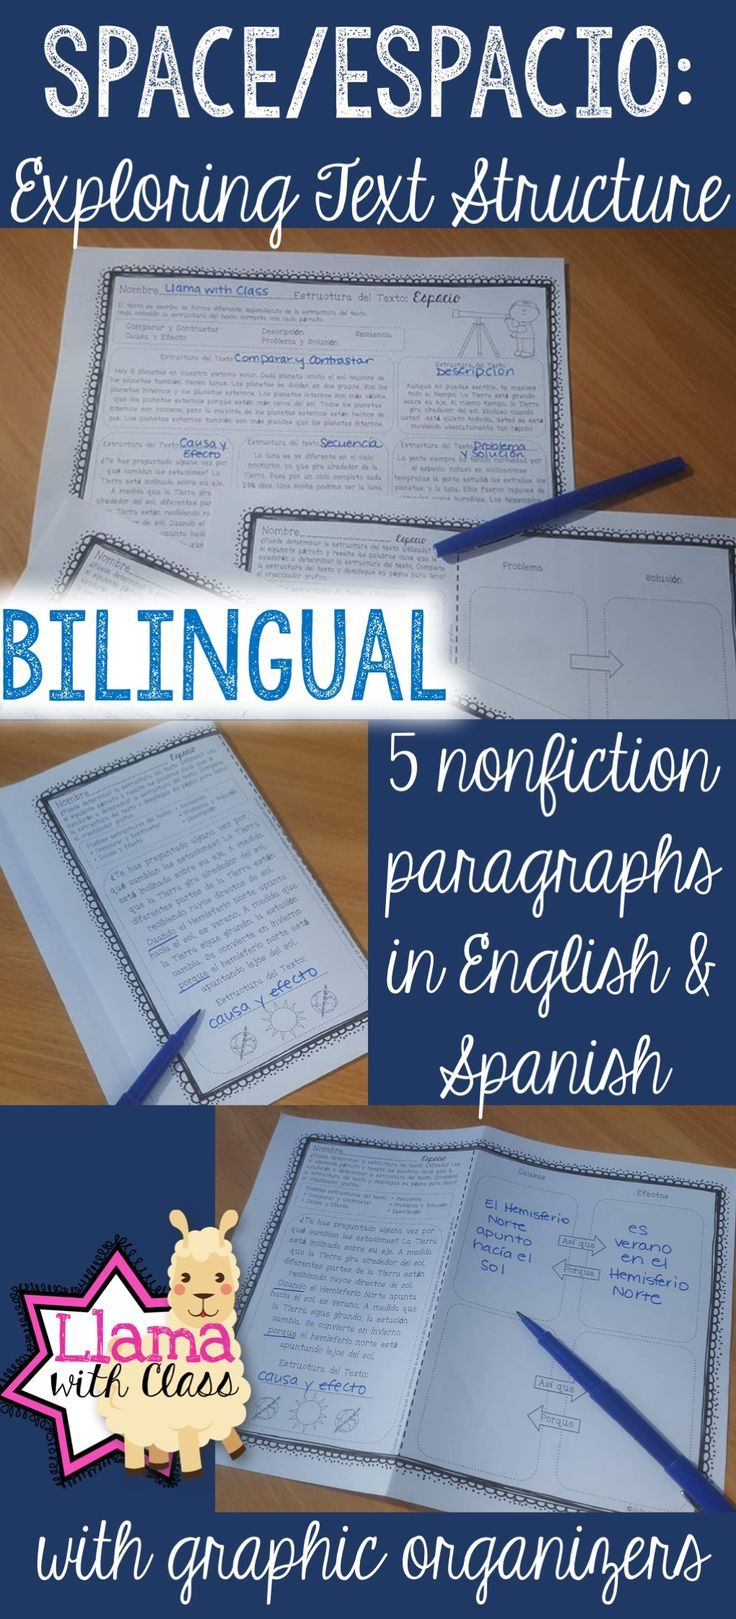 Perfect for the bilingual or dual language classroom, grades 3-5. Explore text structure by looking at 5 nonfiction paragraphs written in different text structures all about space.